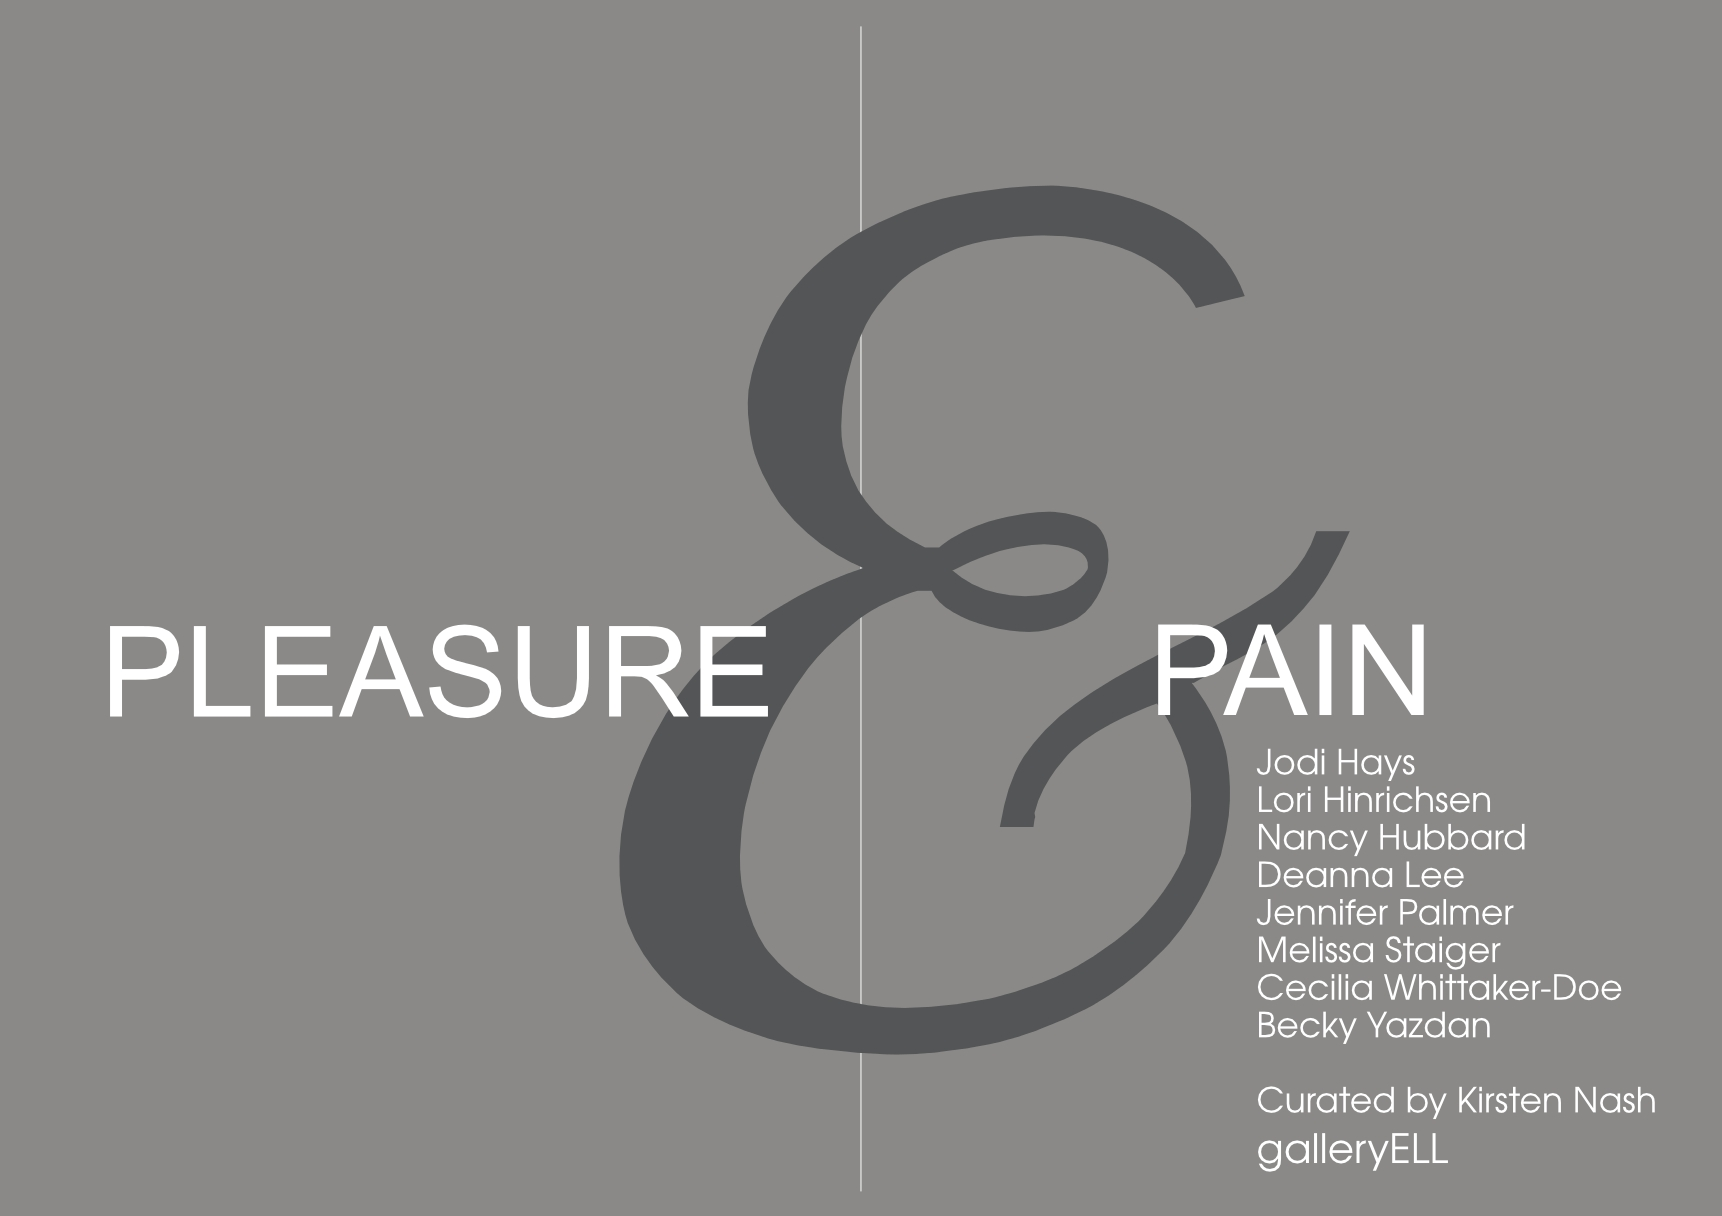 pleasurePAIN-000 (1).jpg